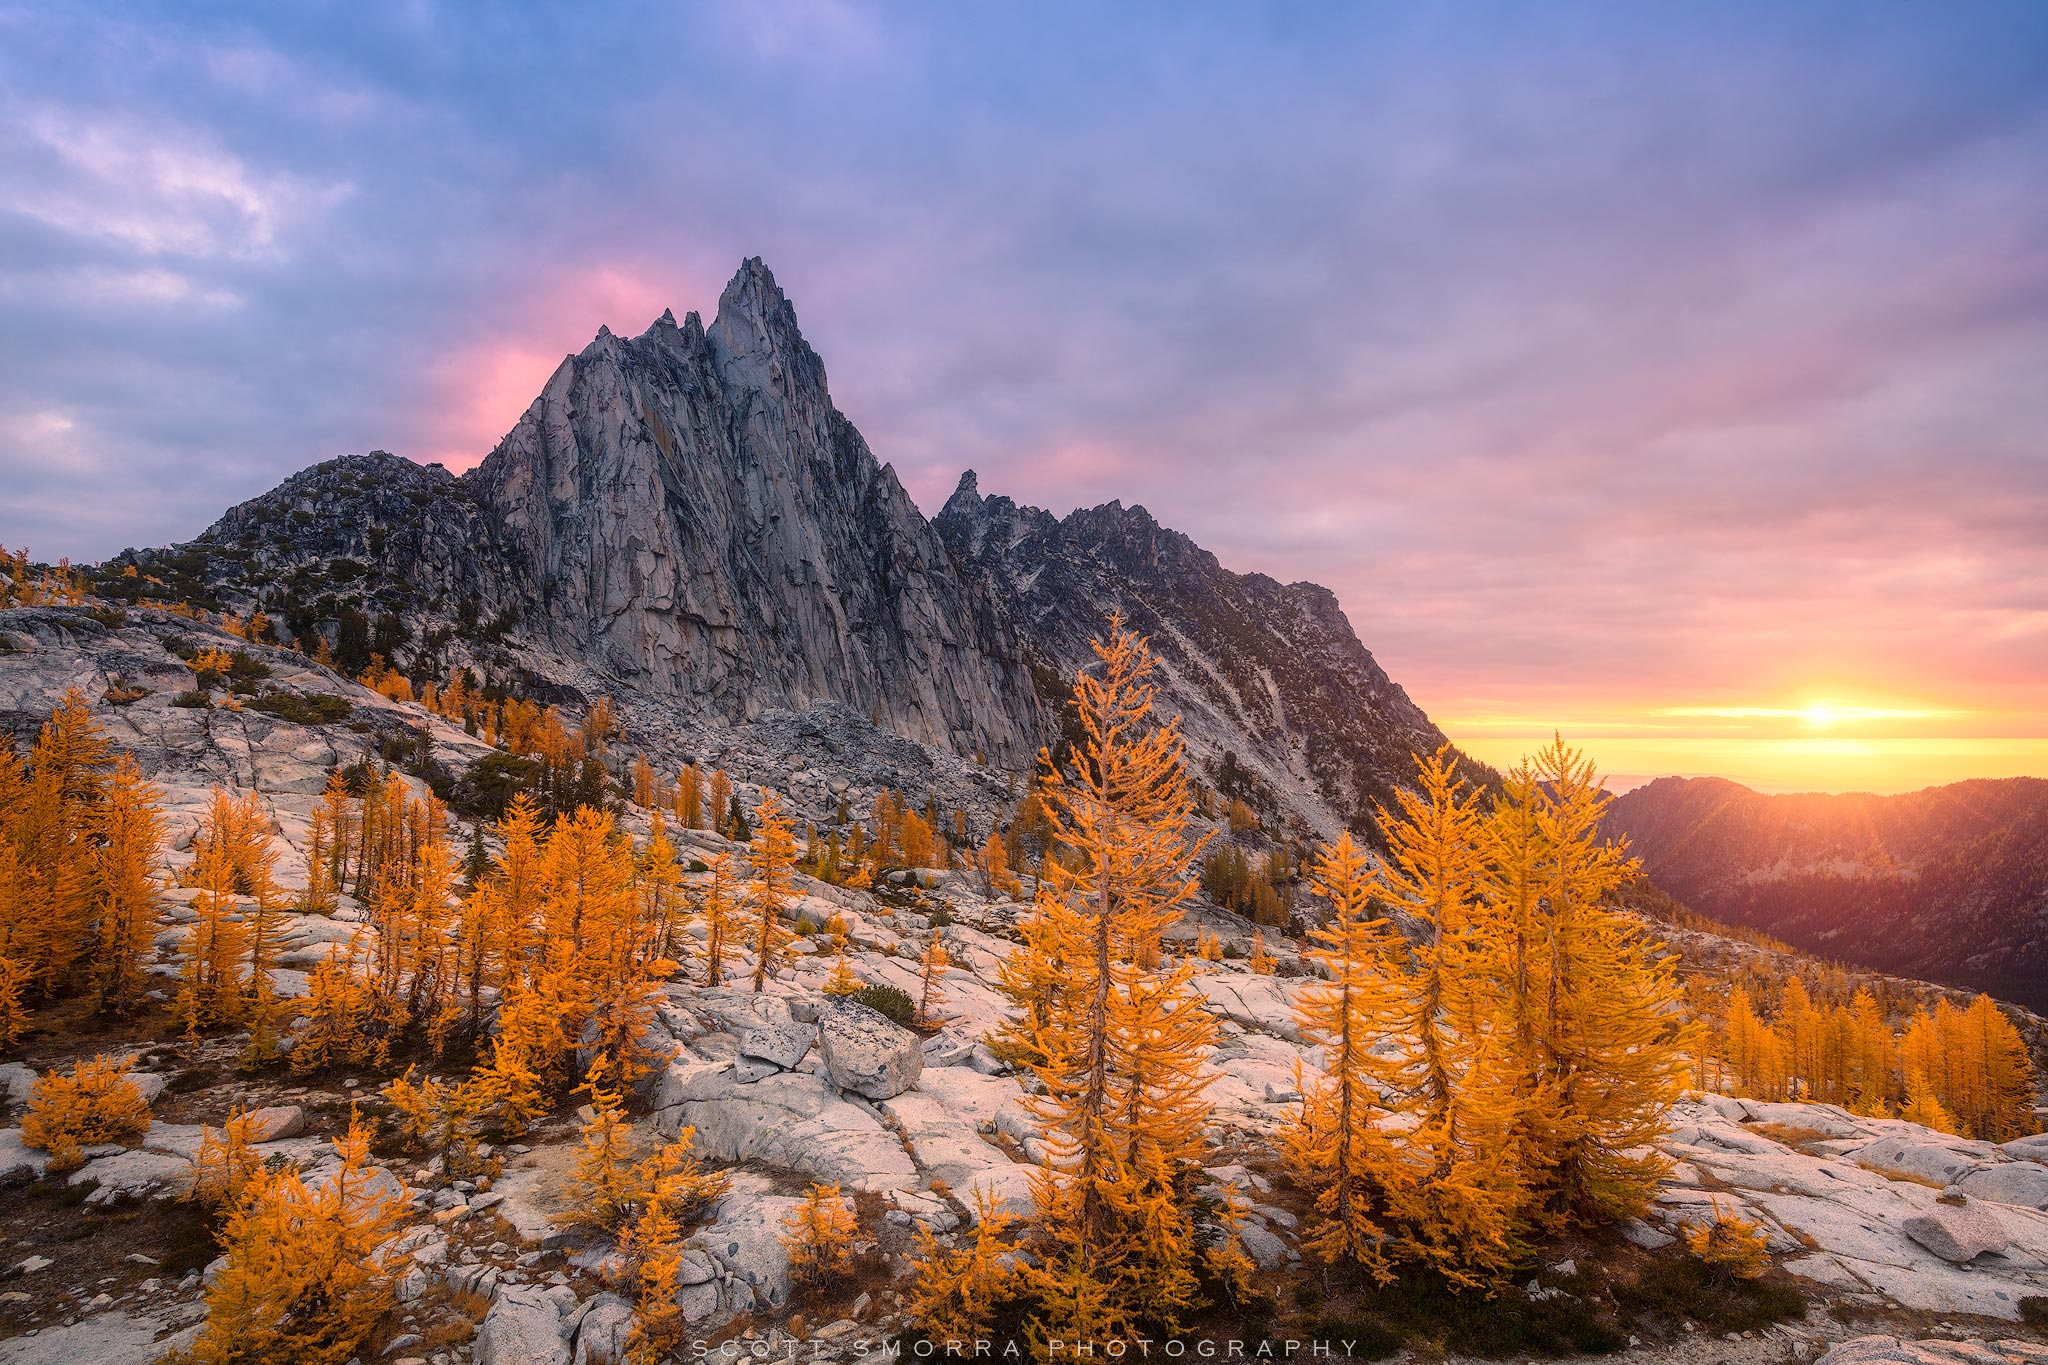 Fine Art Limited Edition of 100 - Sunrise light illuminates a stand of Western Larch (Larix occidentalis) trees below Prusik...